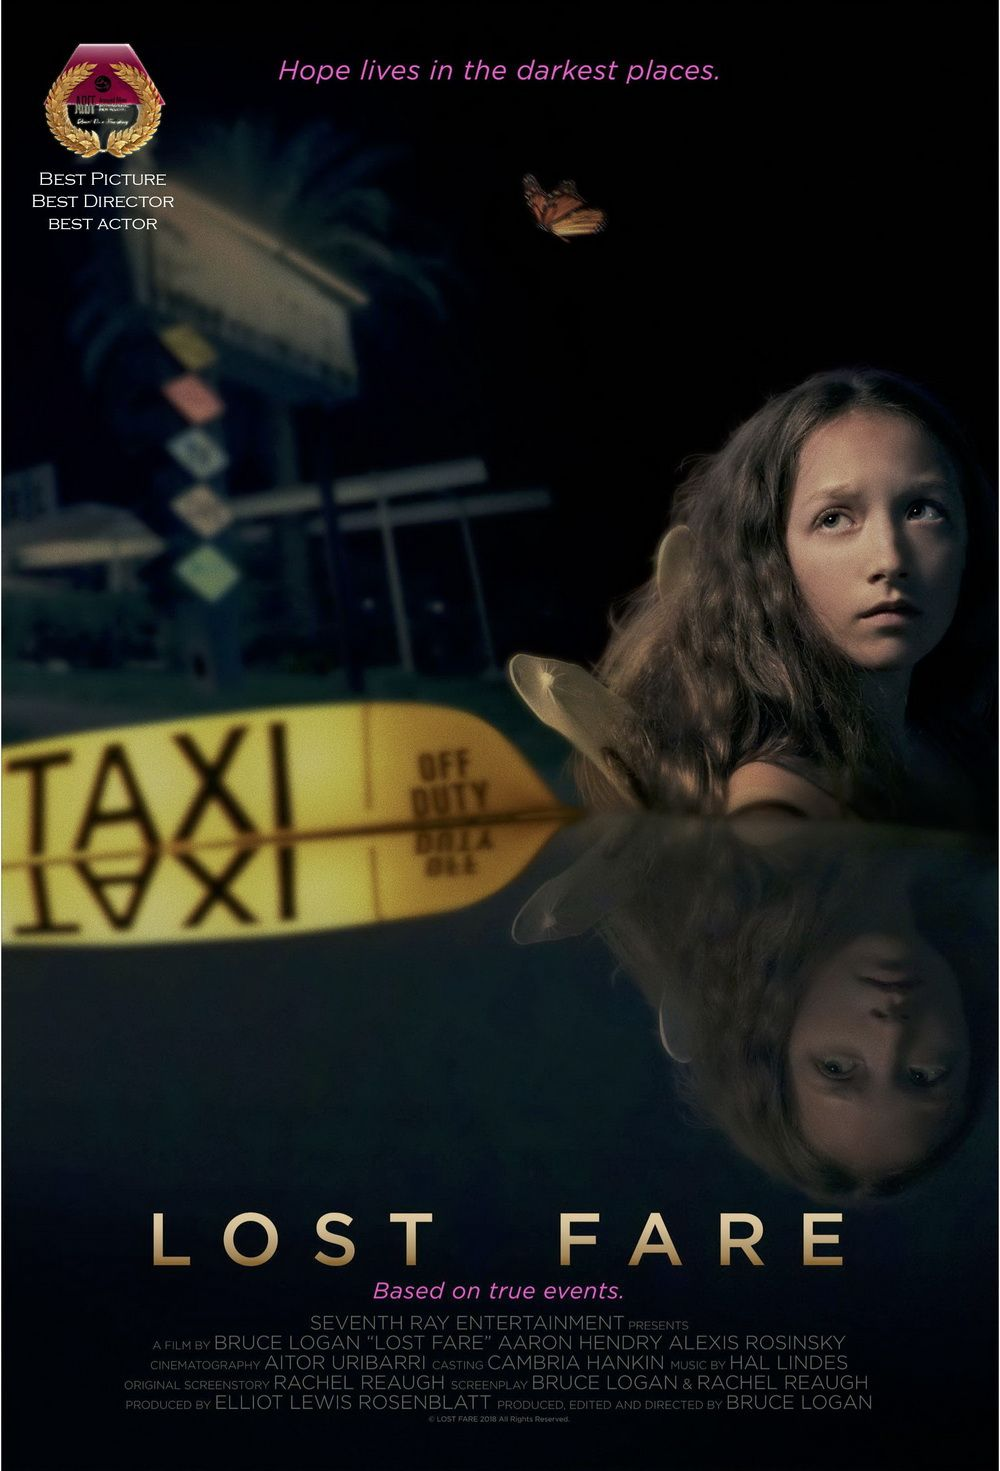 Lost Fare (2018) LOST FARE. Based on true events and characters. An 11 year  old disabled girl, routinely pimped out by her prostitute mother, ...